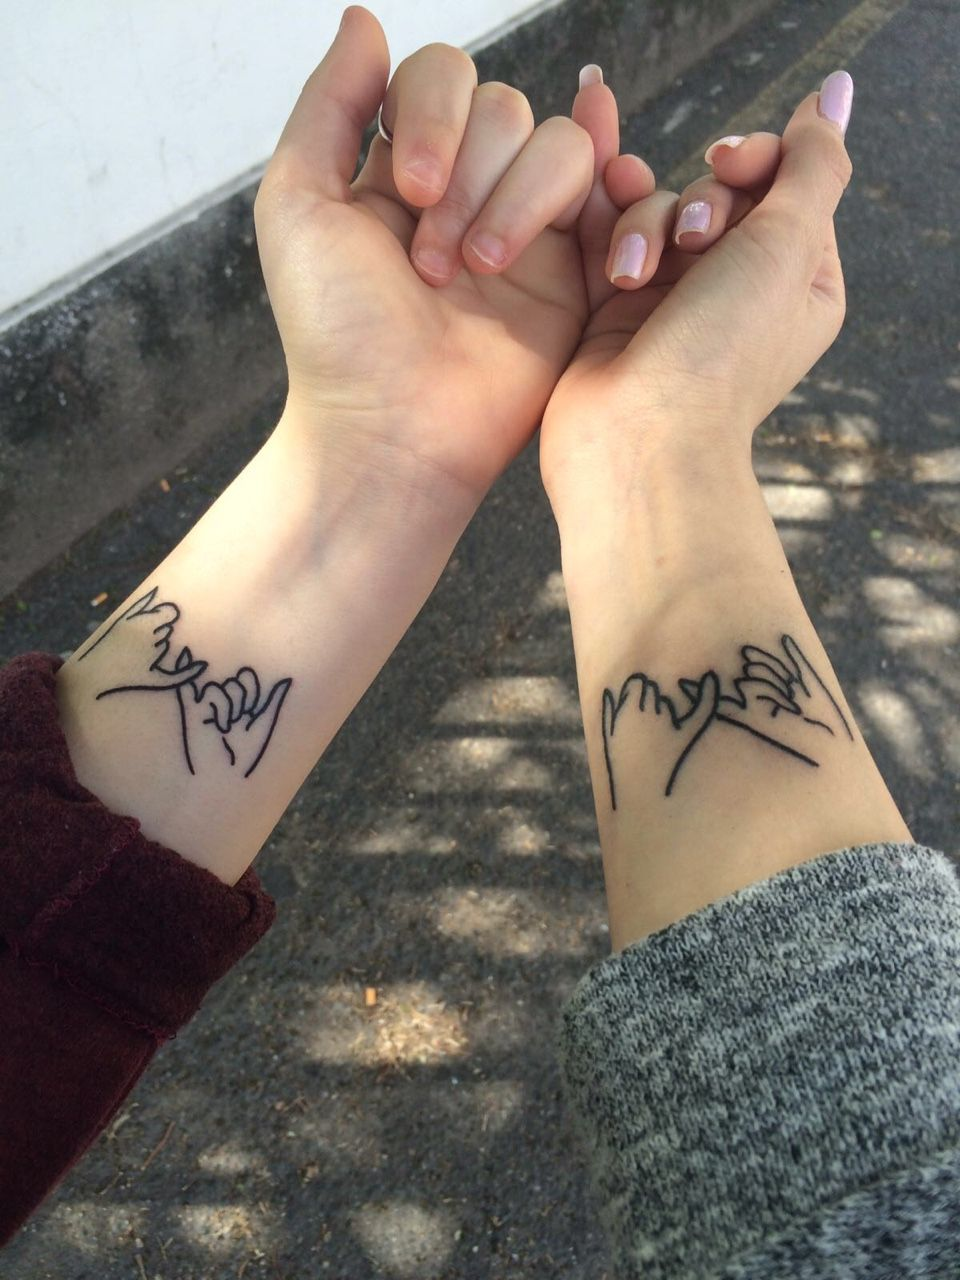 Best Friend Tattoos Small Tumblr : friend, tattoos, small, tumblr, Friend, Tattoos, Tumblr, Tattoos,, Friendship